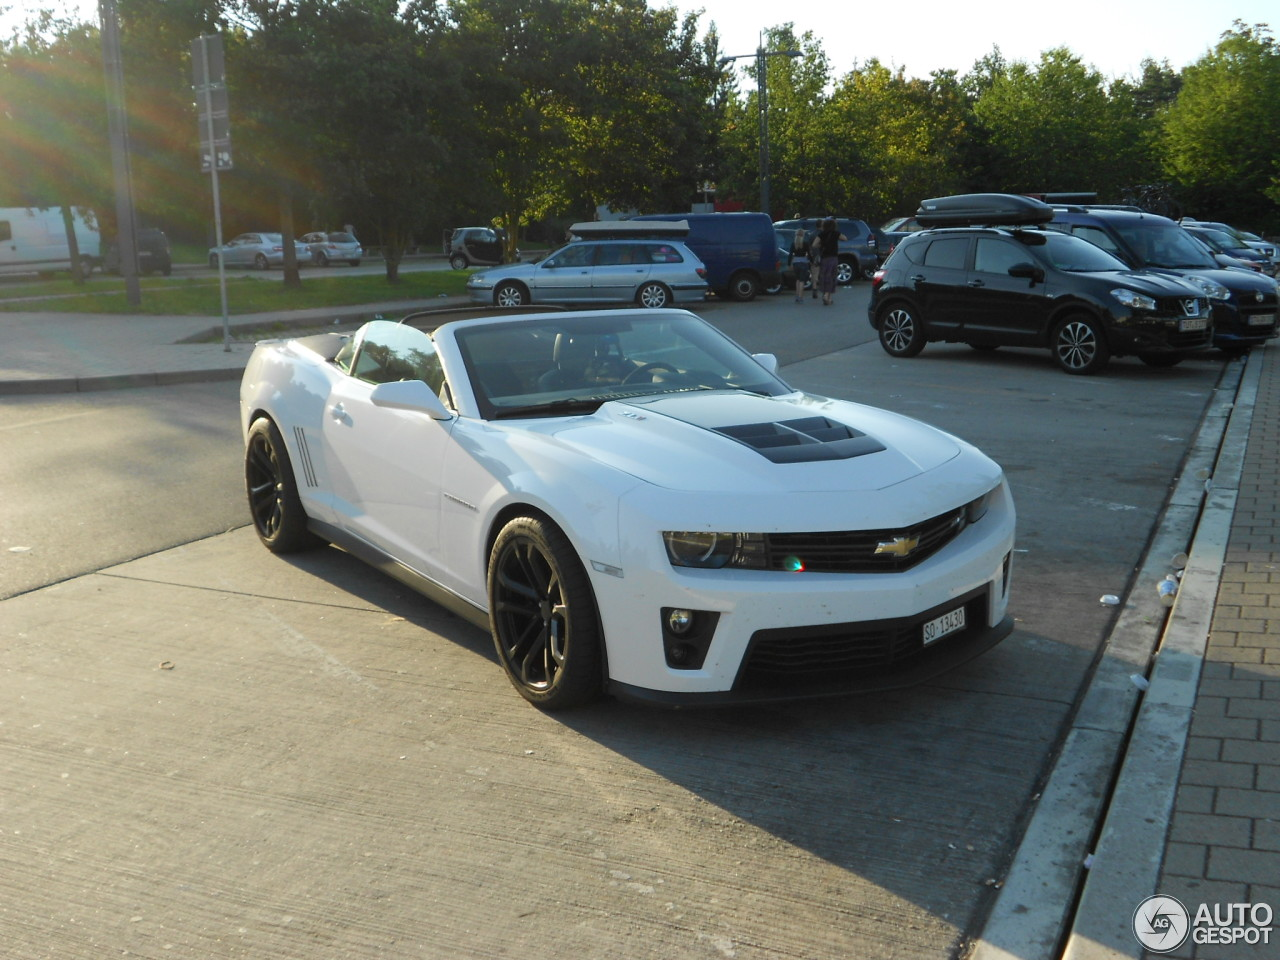 Chevrolet Camaro Zl1 Convertible 18 August 2013 Autogespot